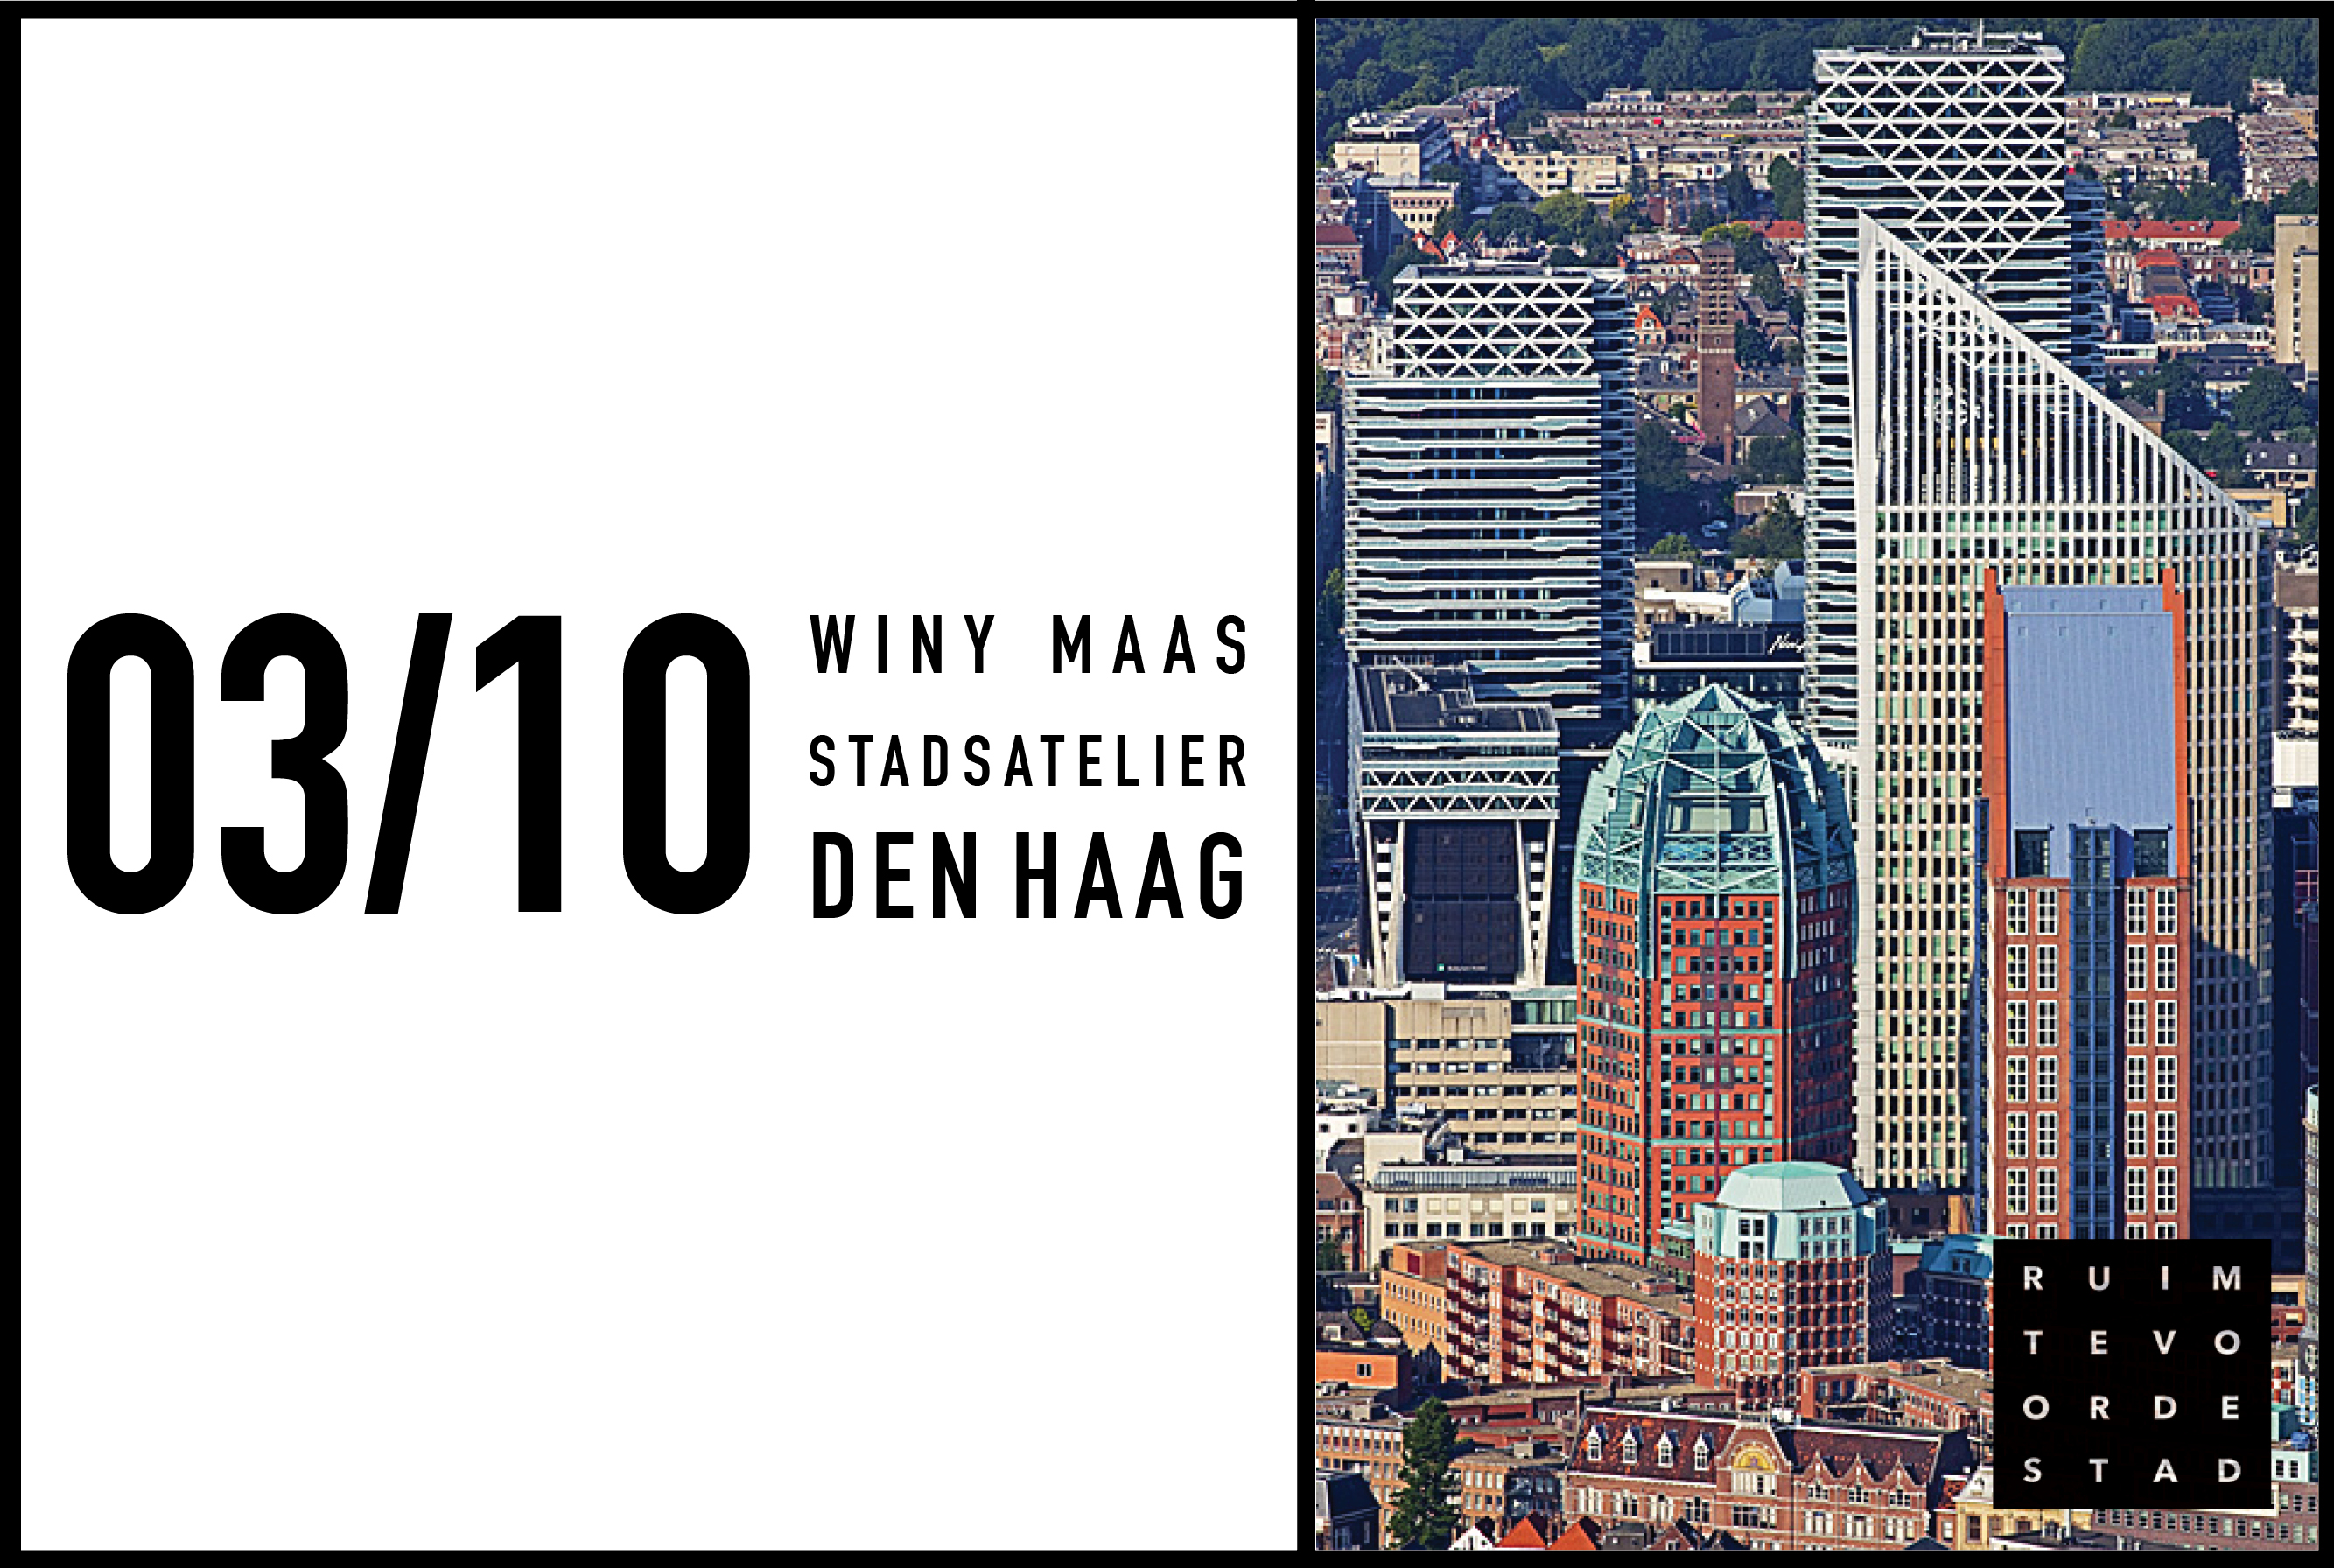 Winy Maas takes part in seminar about public space and densification of Den Haag, 3 October 2017